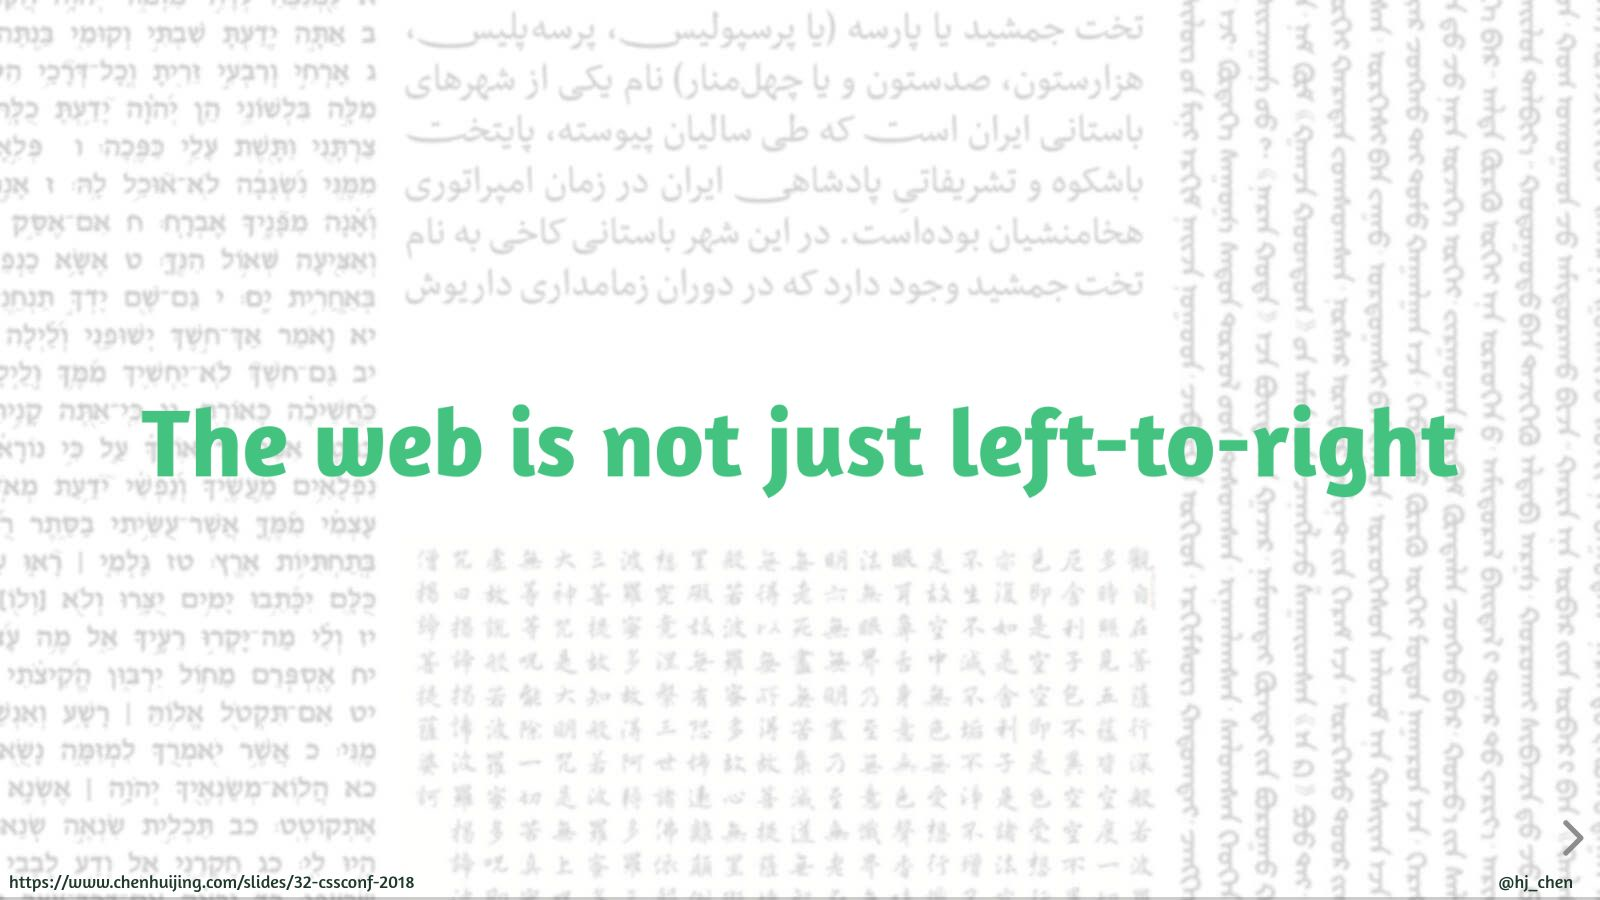 The web is not just right-to-left